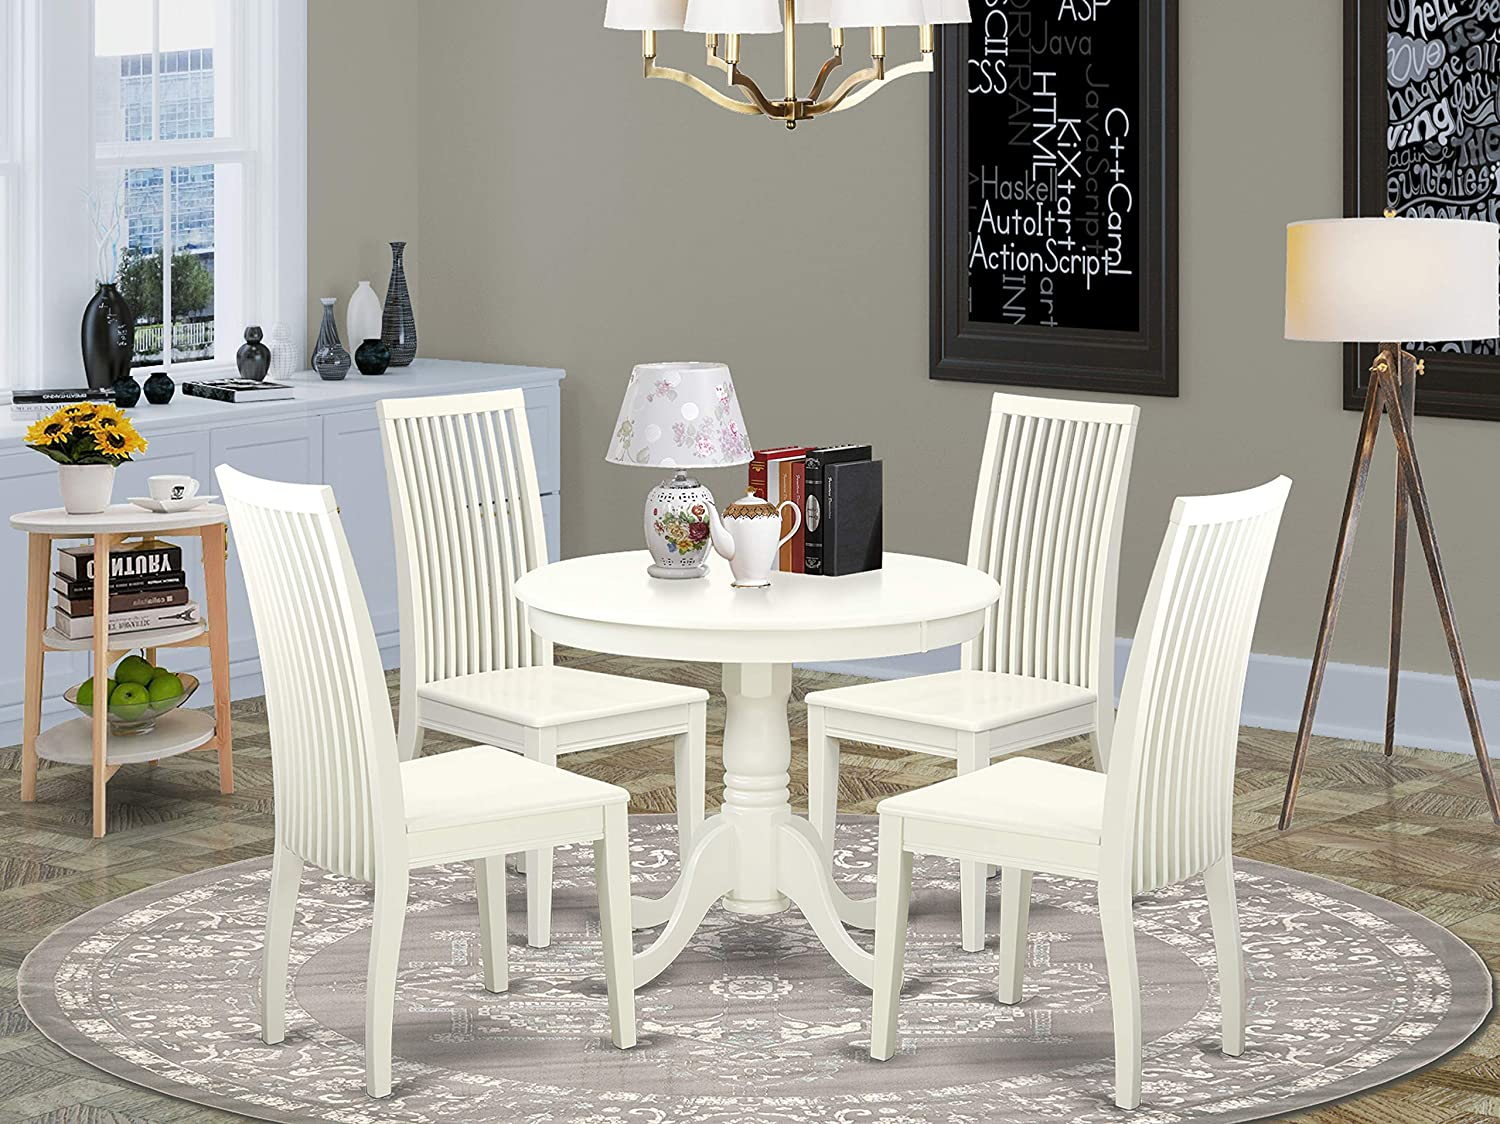 East West Furniture Round Set-4 Room W Dining Milwaukee Spring new work Mall Excellent Chairs-A